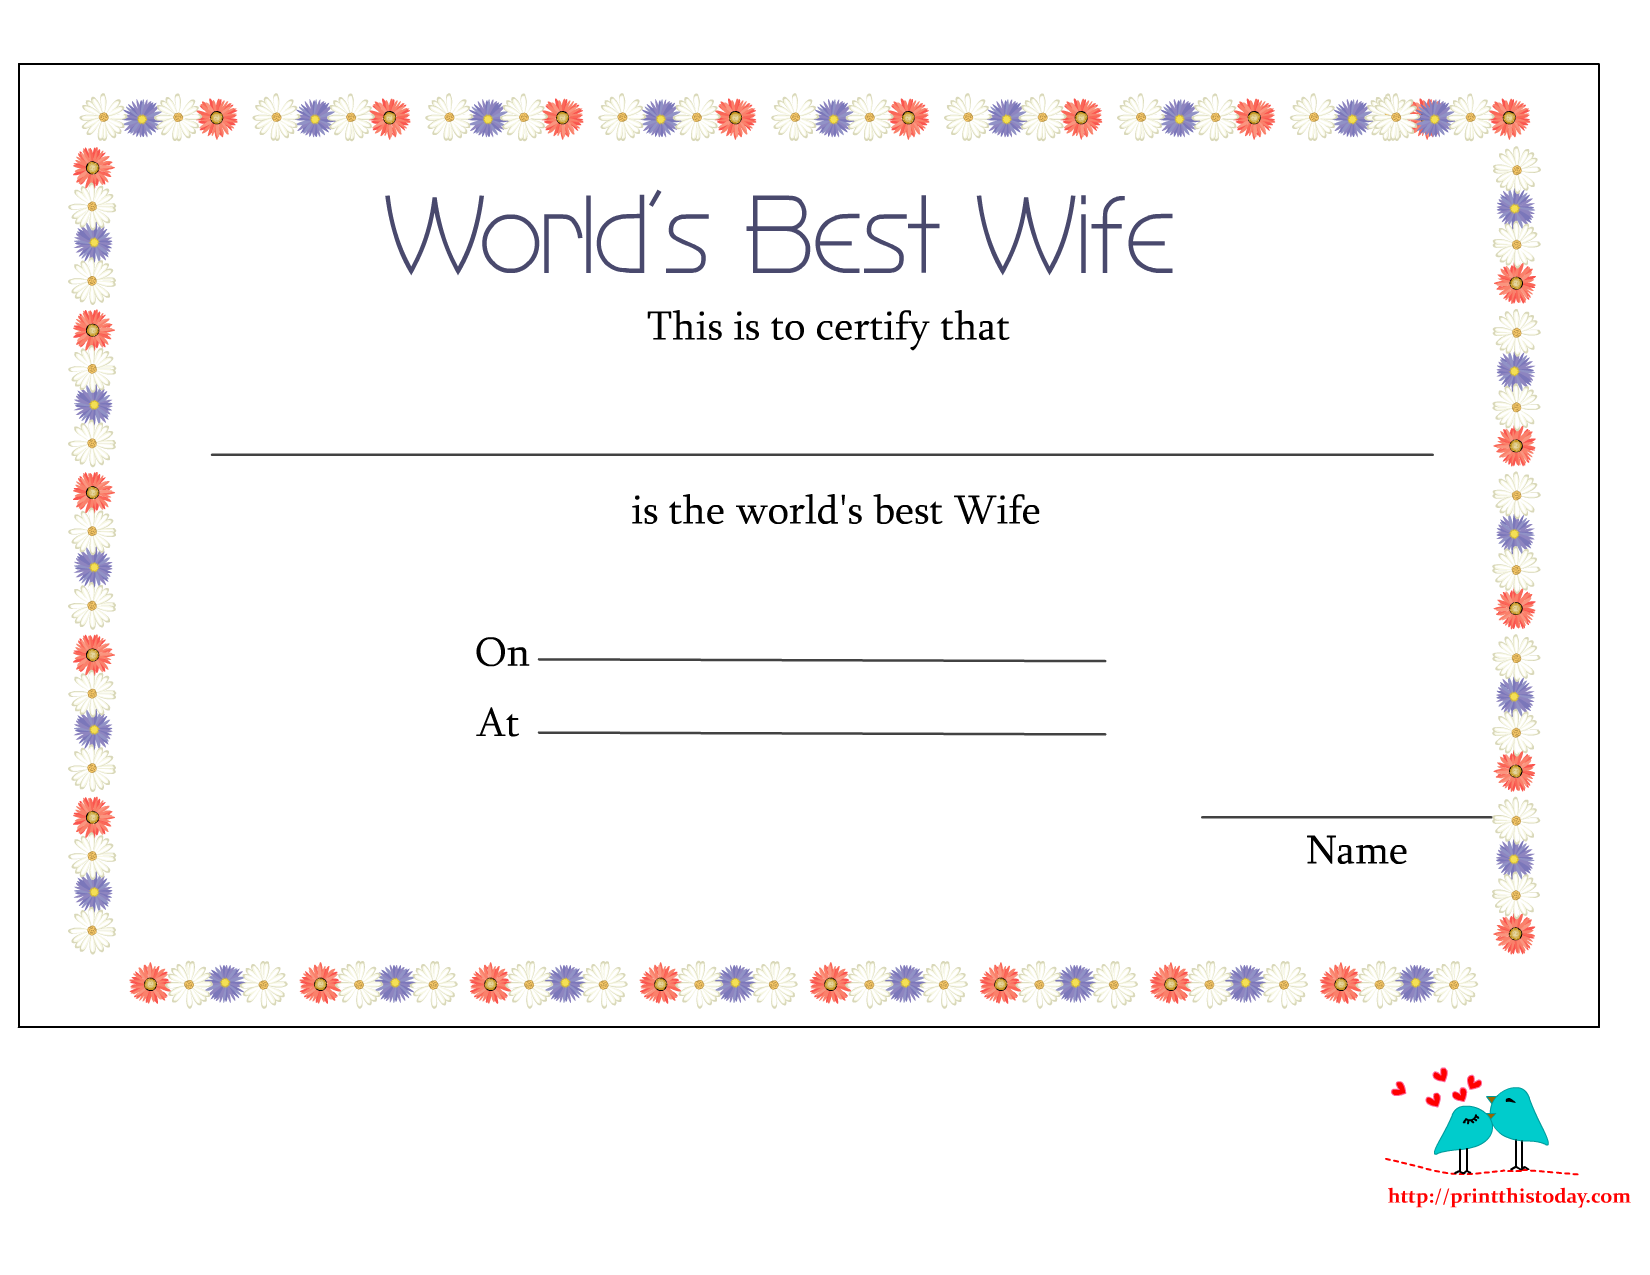 Free printable worlds best wife certificates worlds best wife certificate printable with floral border alramifo Choice Image